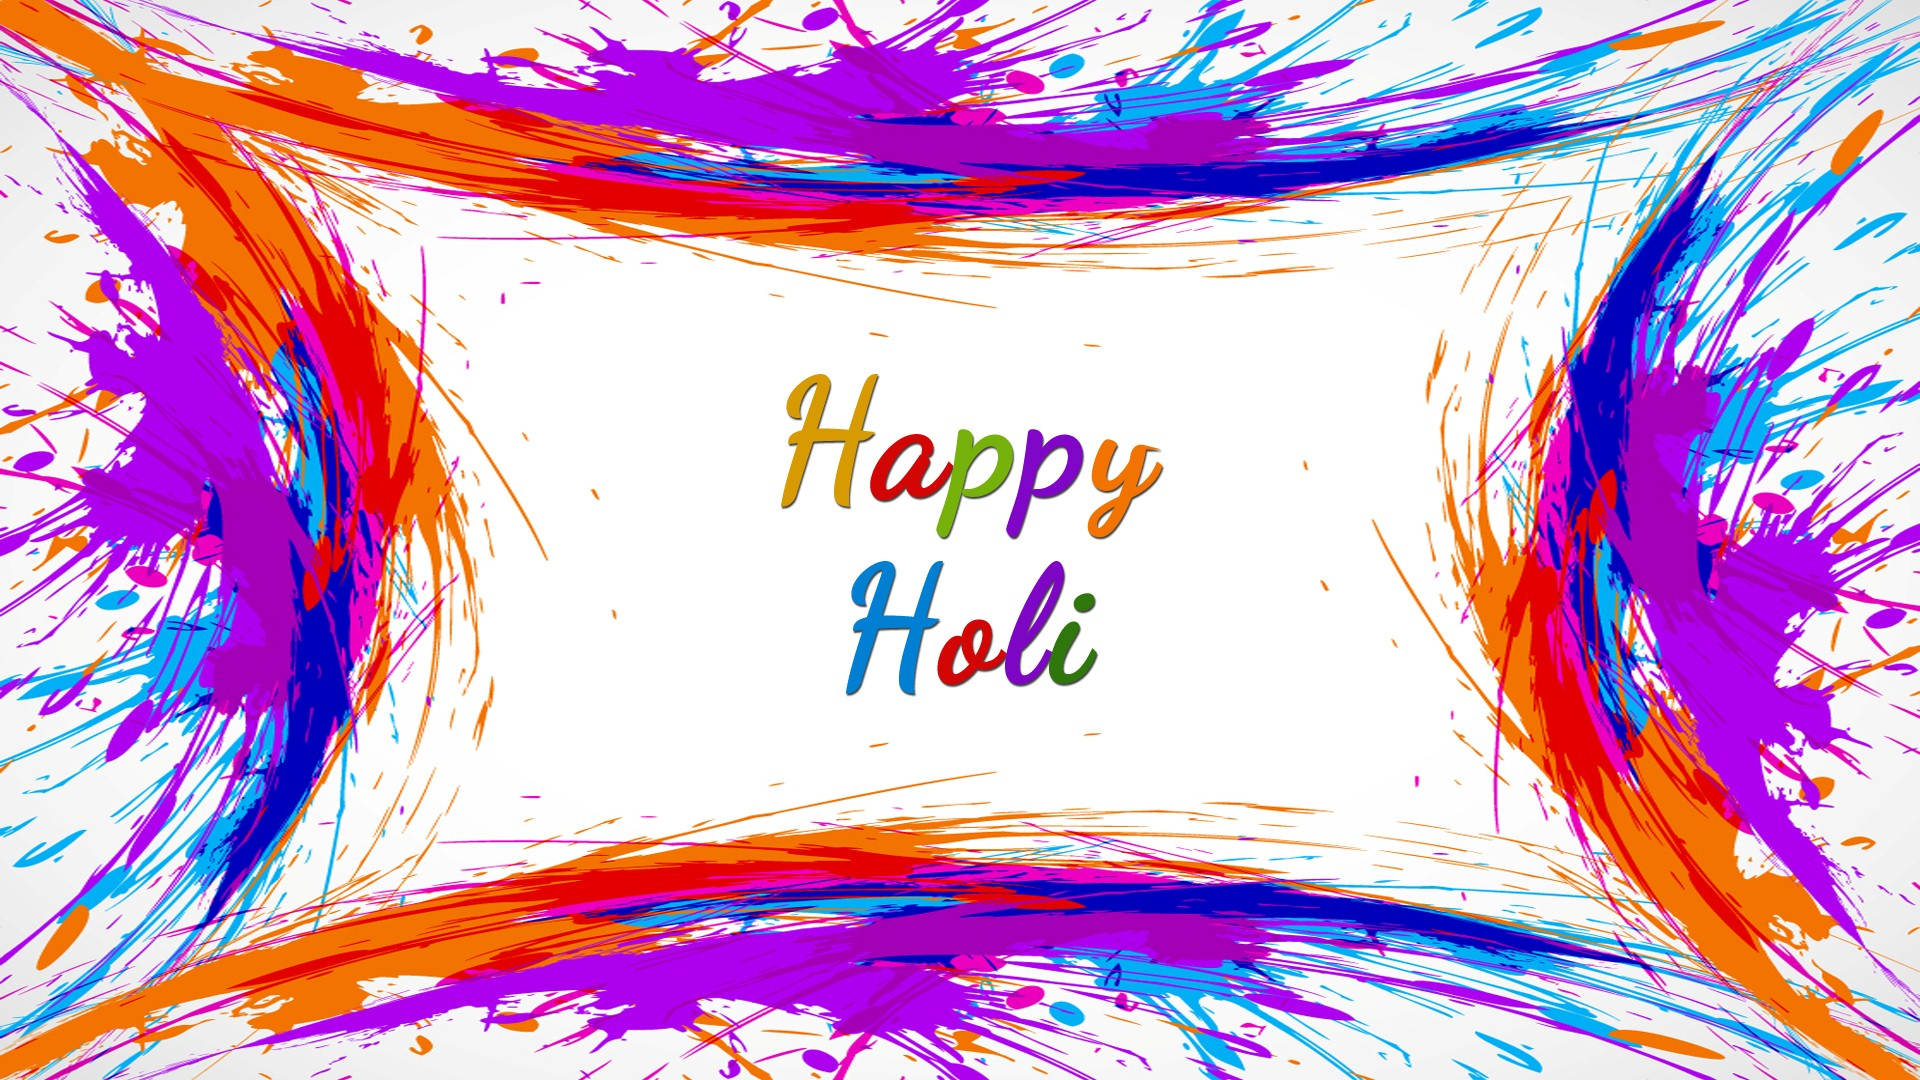 Download Happy Holi Colorful Hd Image Hd Wallpapers 1920x1080 97